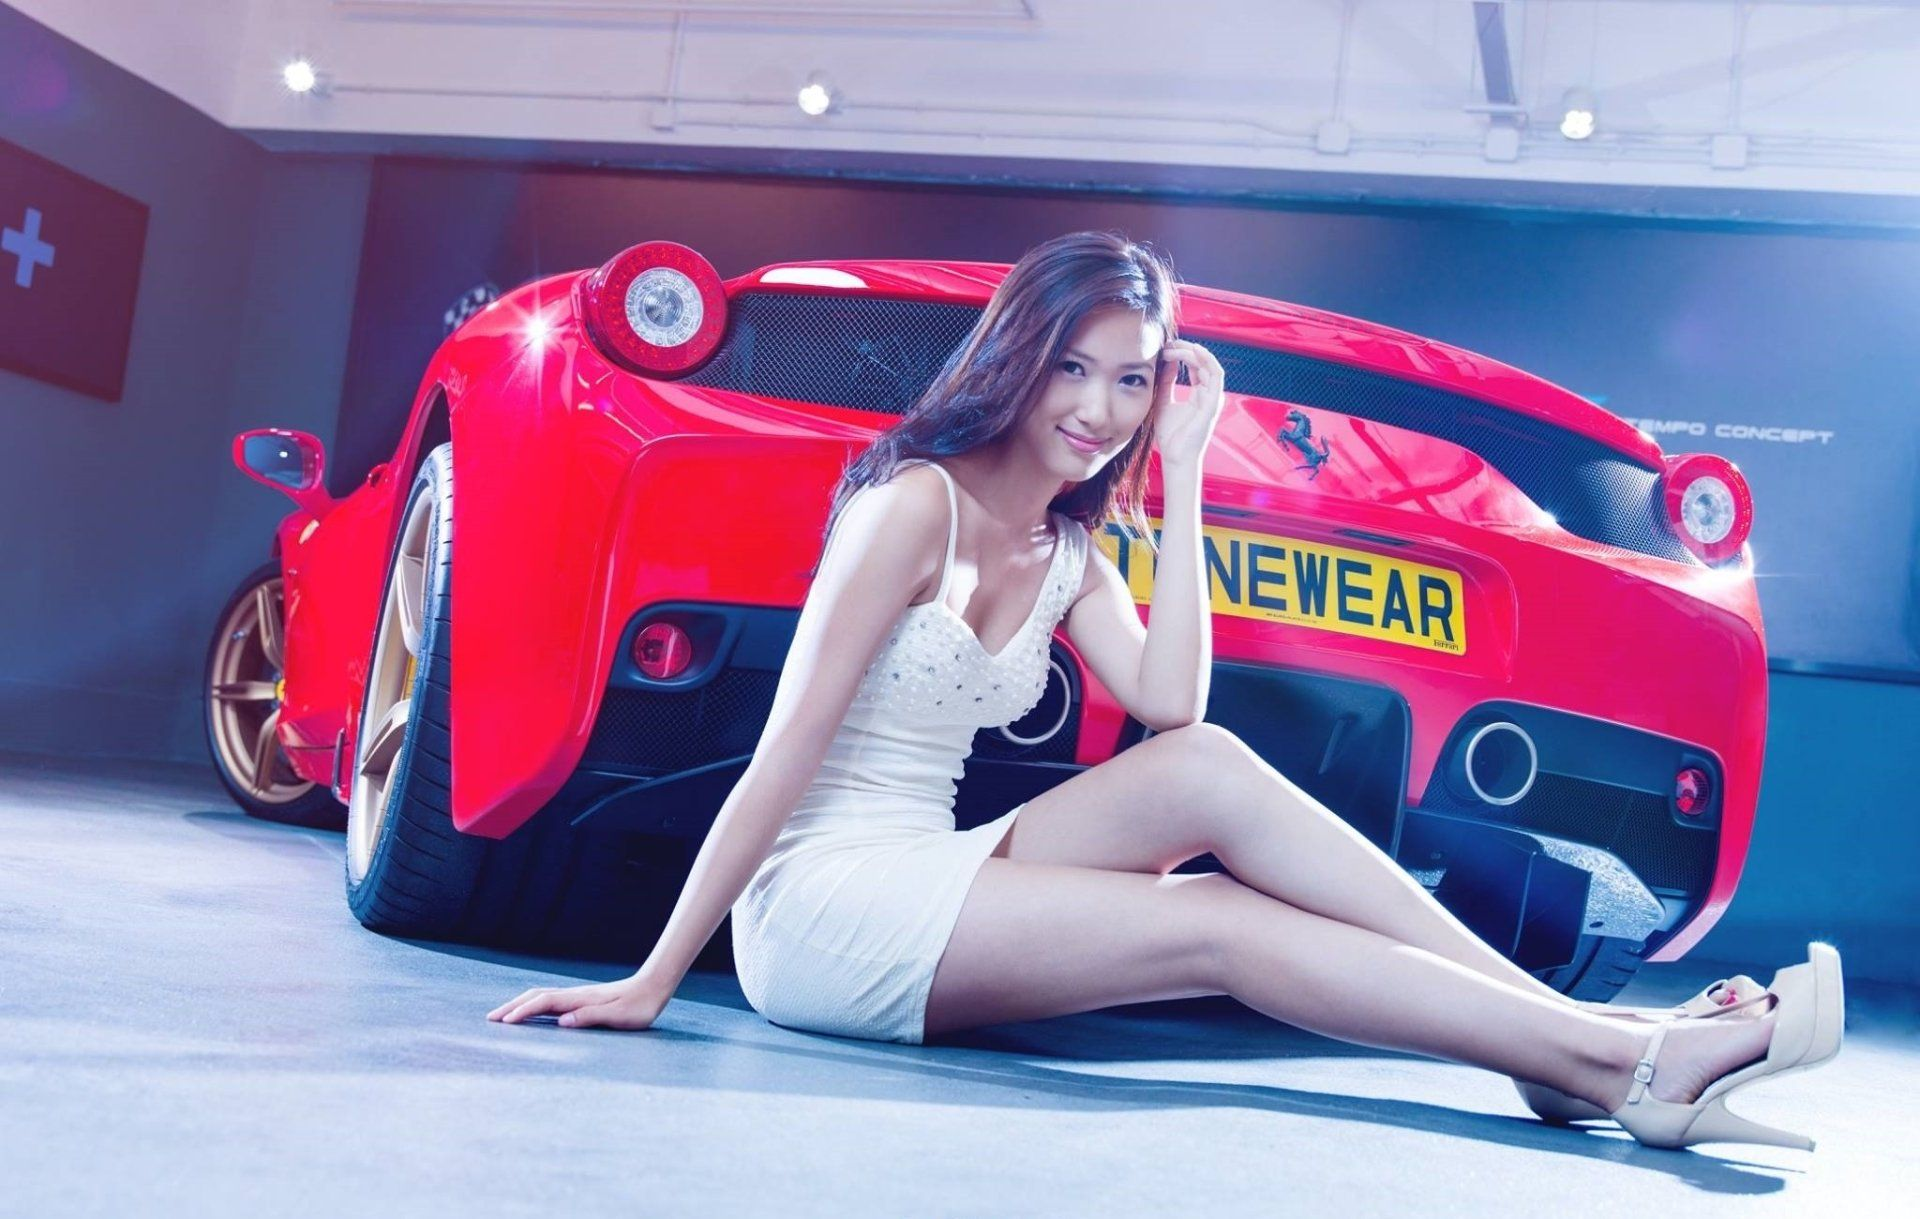 Women Girls Cars Wallpaper Car Girls Car Insurance Spaghetti